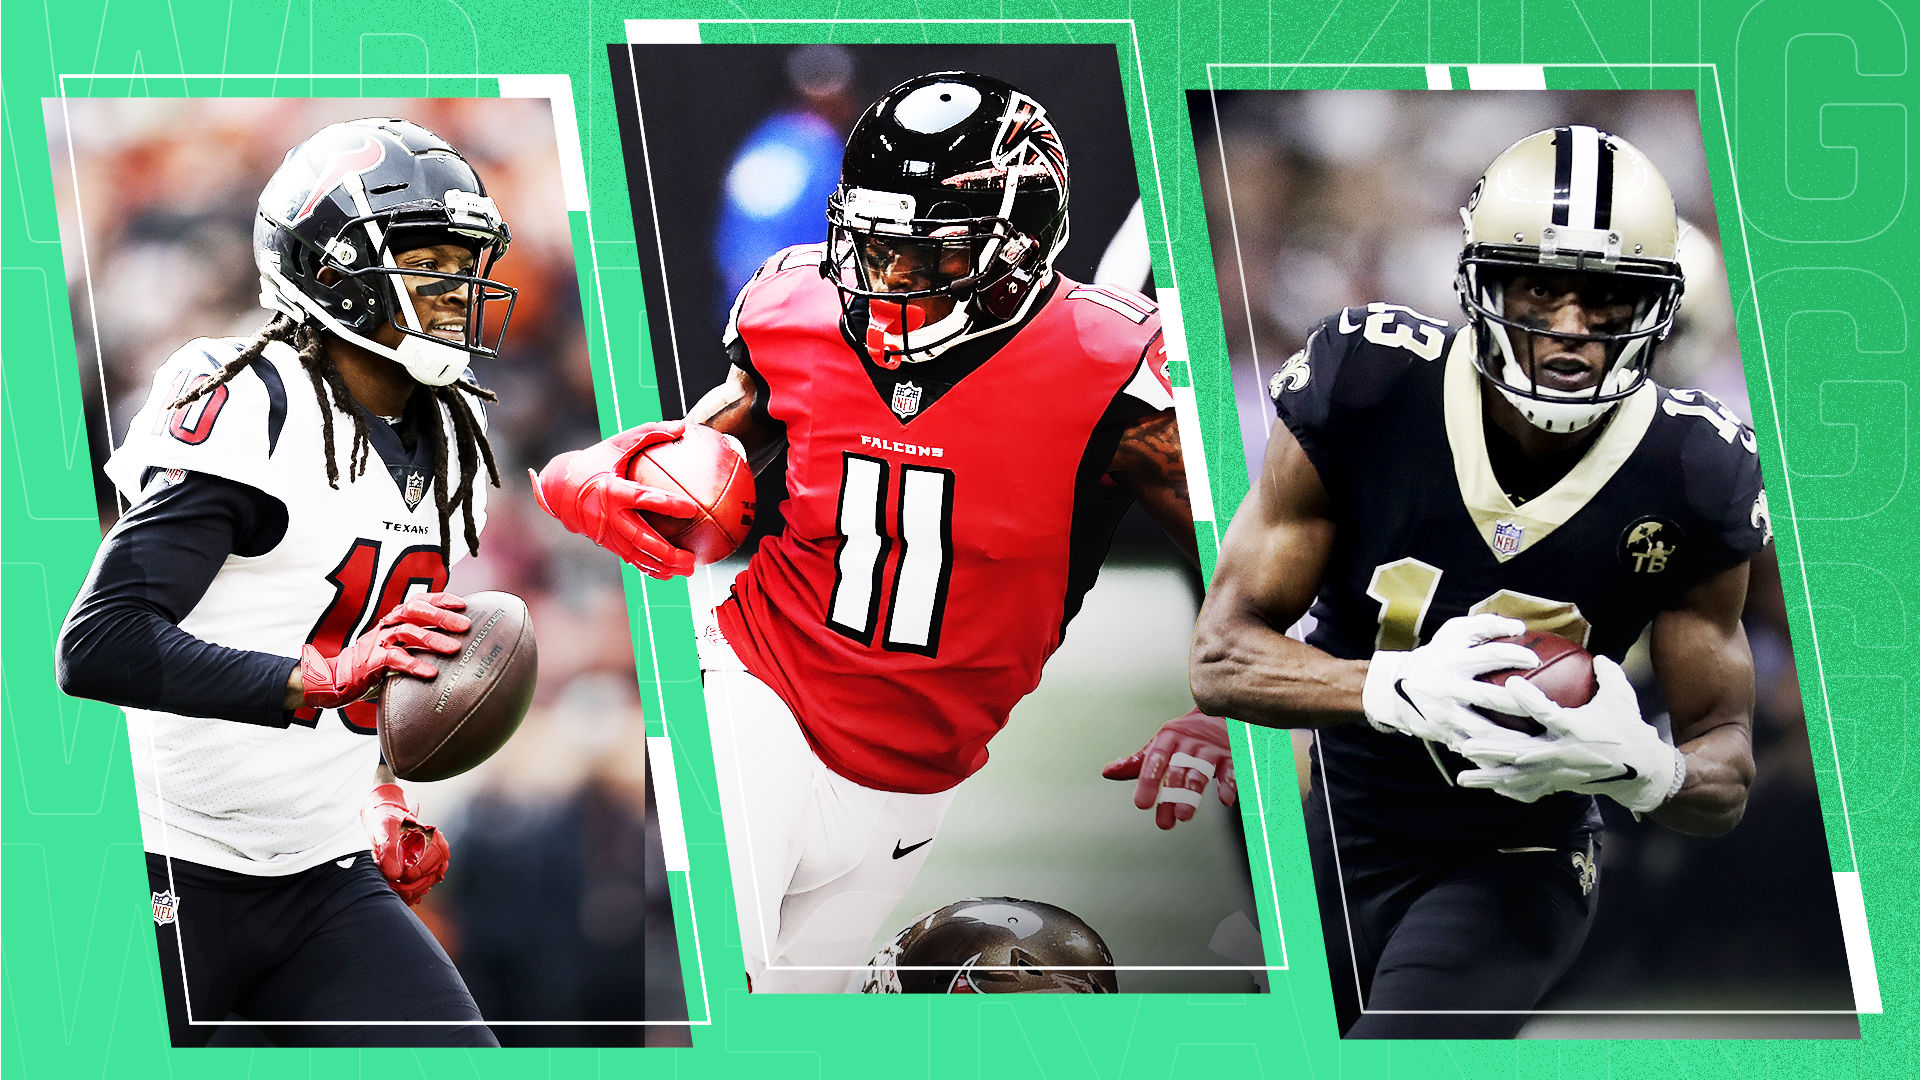 Ranking the NFL's top 25 wide receivers for 2019